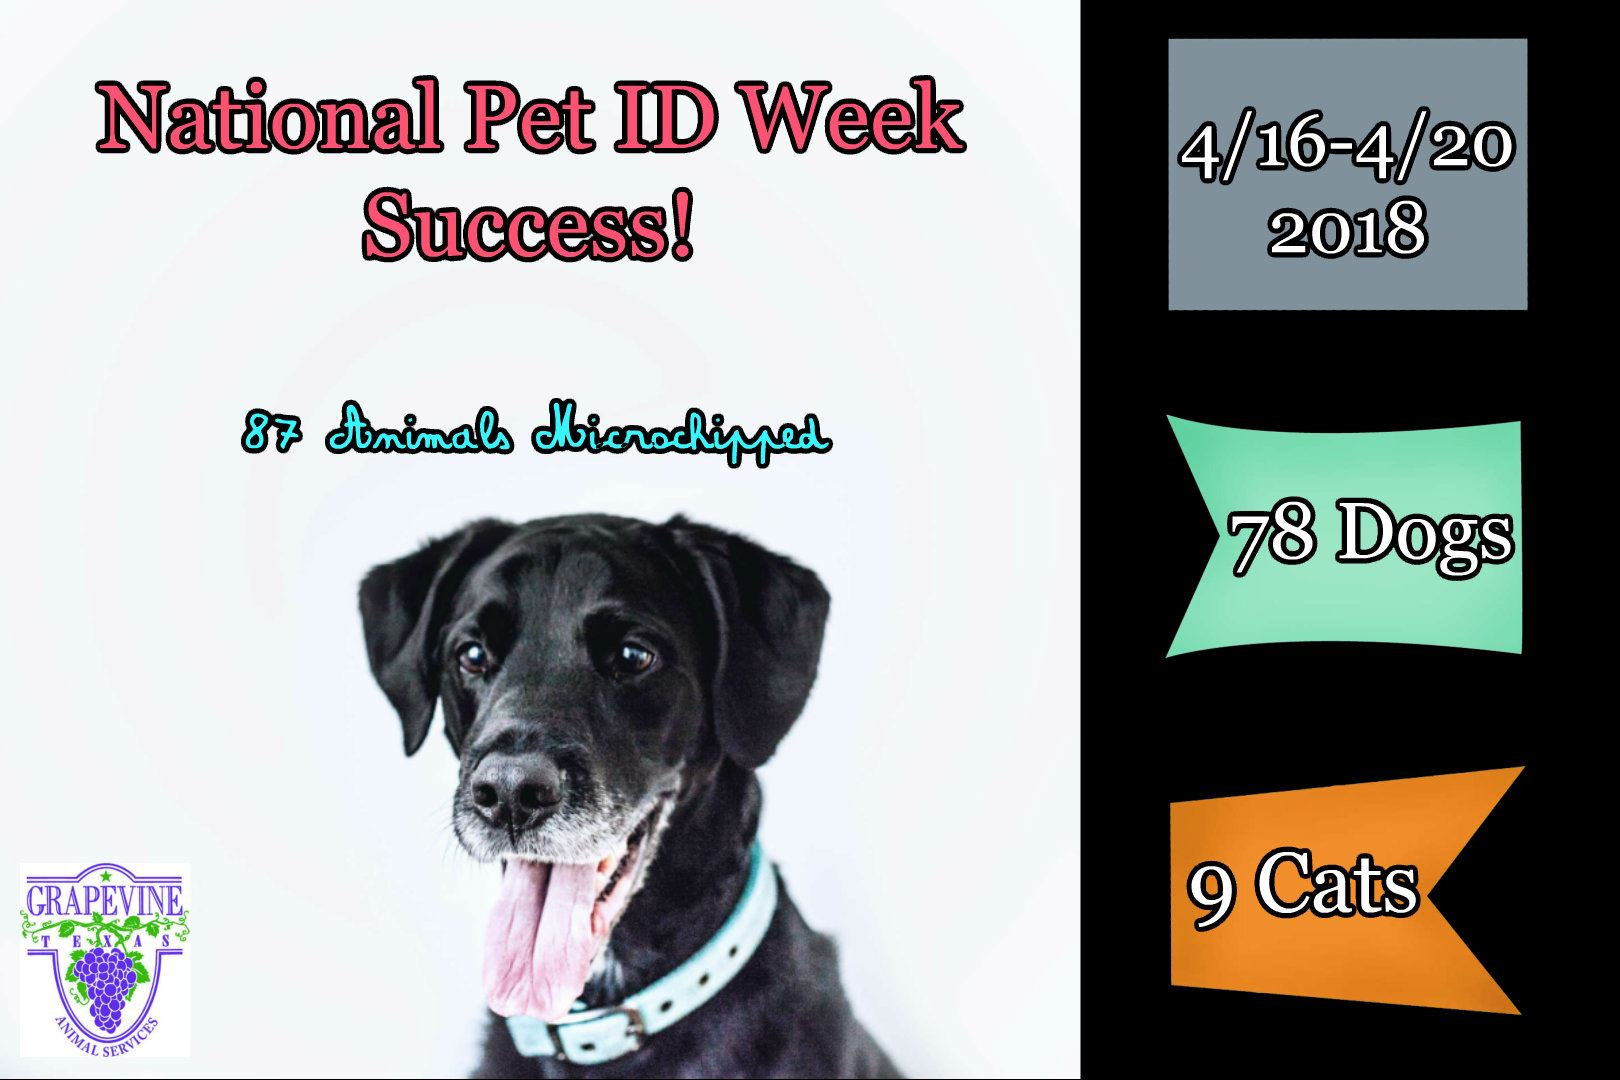 Statistics of pet ID microchipping event.  Listed in text.